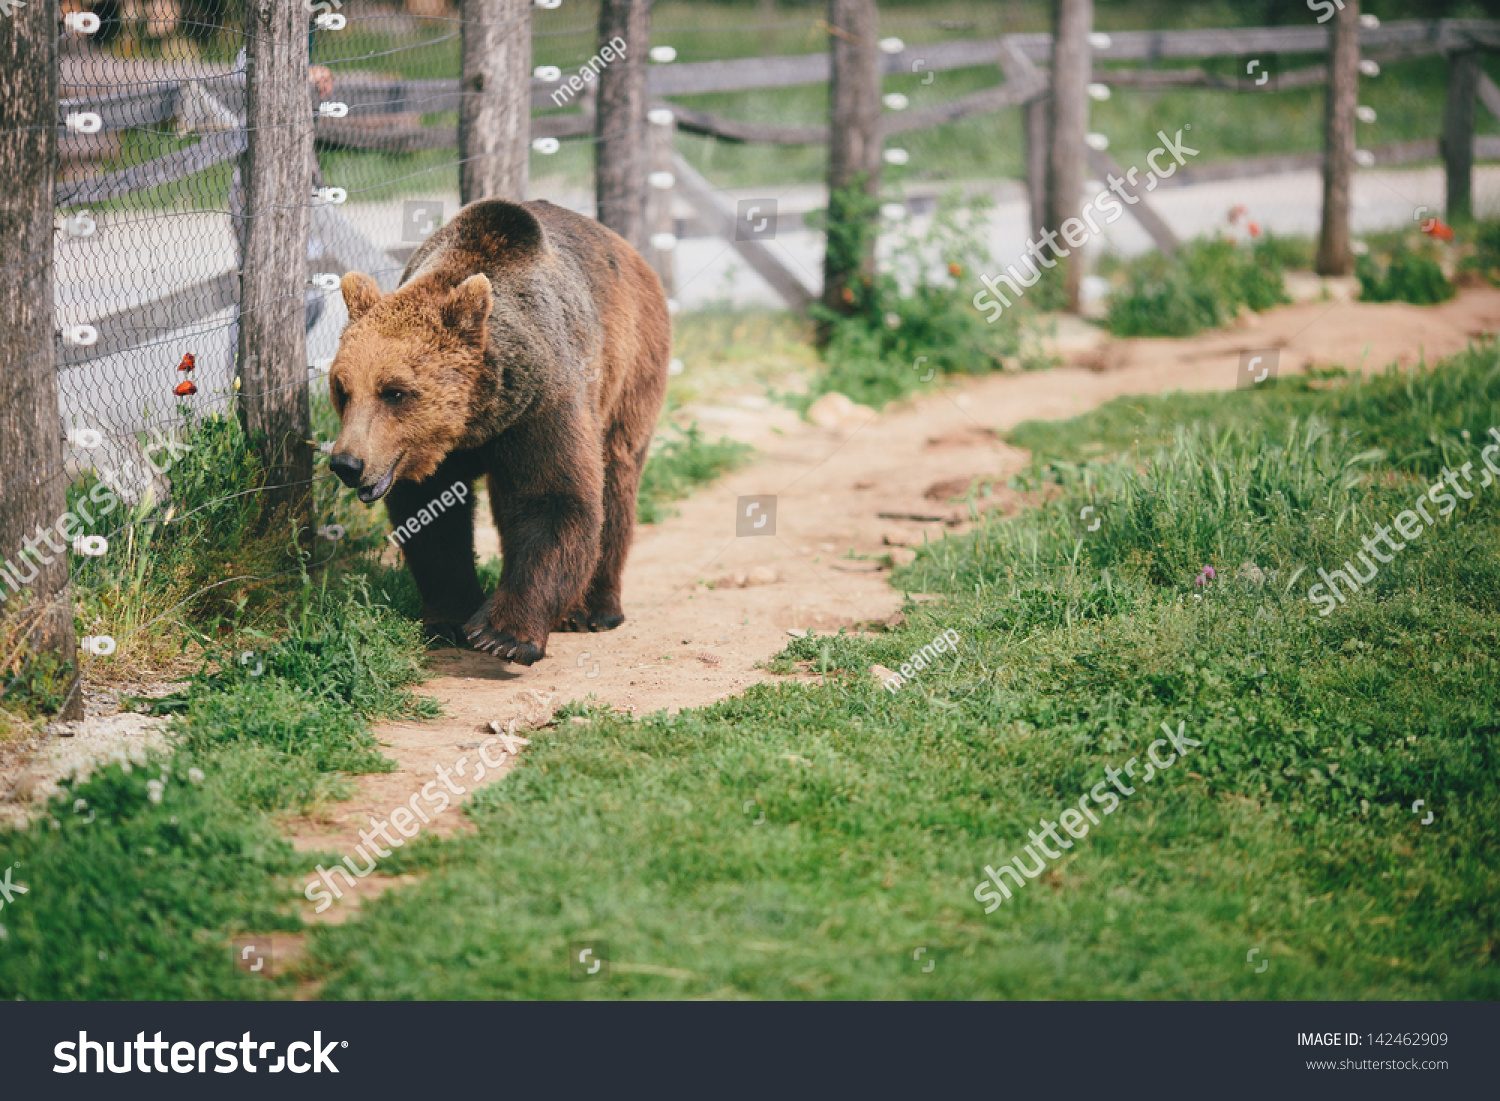 Grizzly bear walking - photo#23